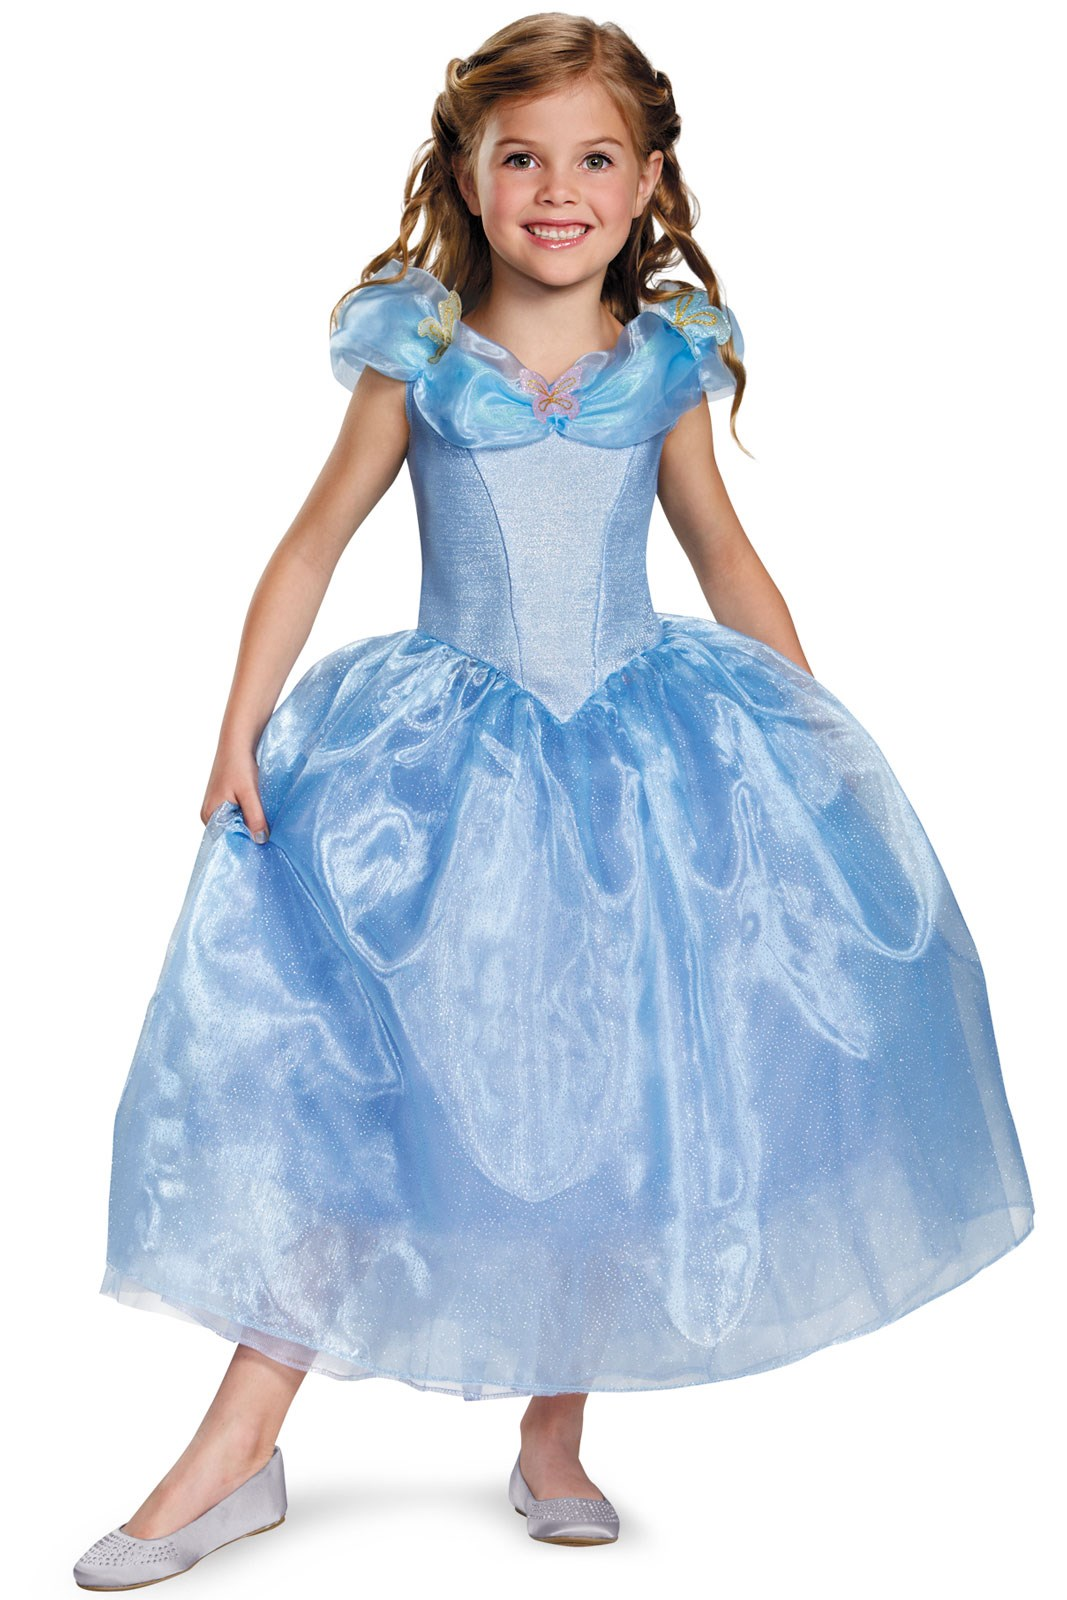 Disney Cinderella Movie Kids Deluxe Costume on Large House With Yard